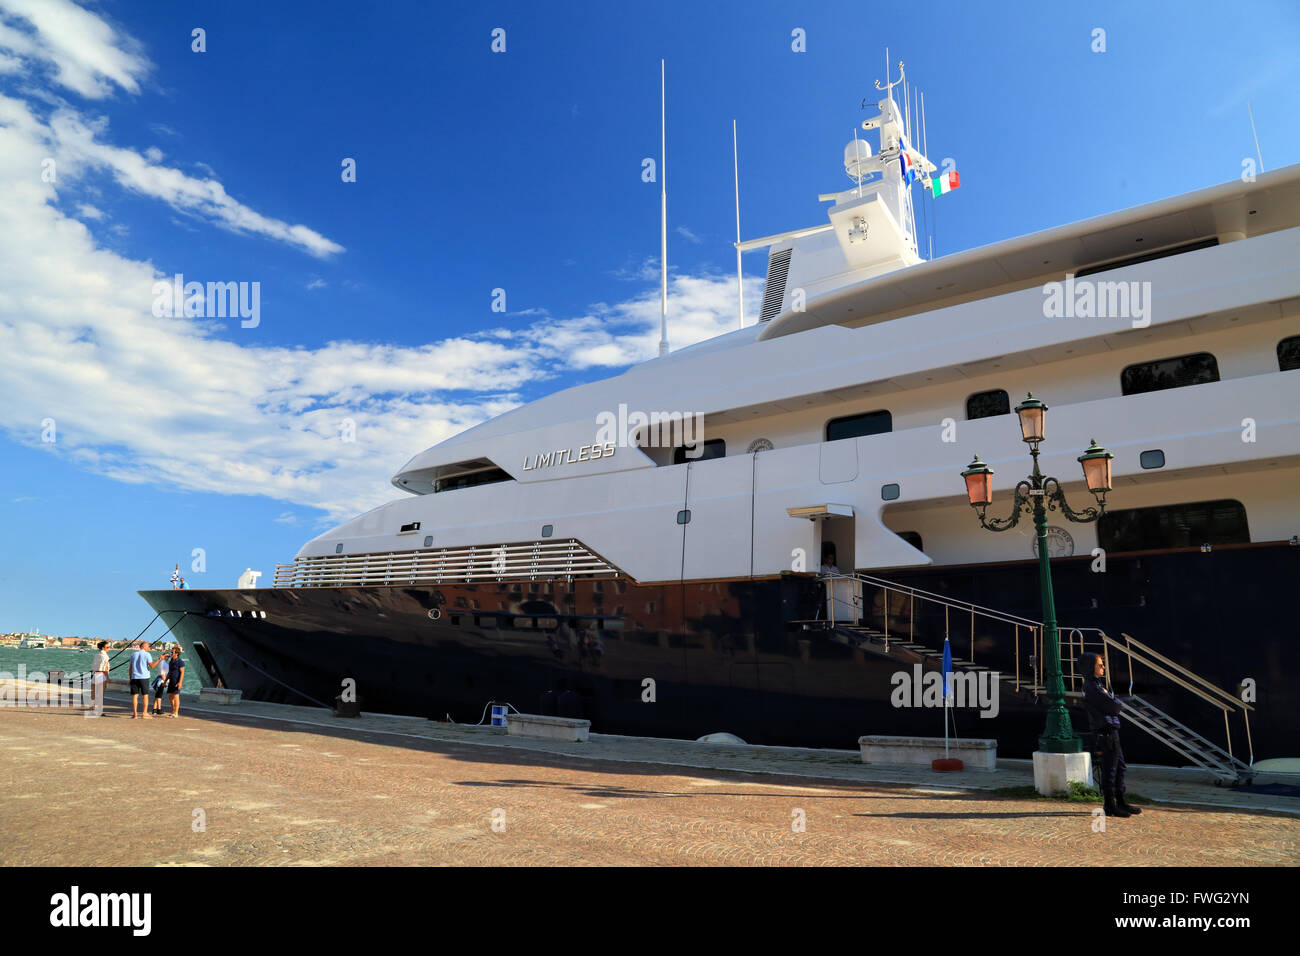 Luxury super mega yacht Limitless, IMO 8975940, owned by Les ...